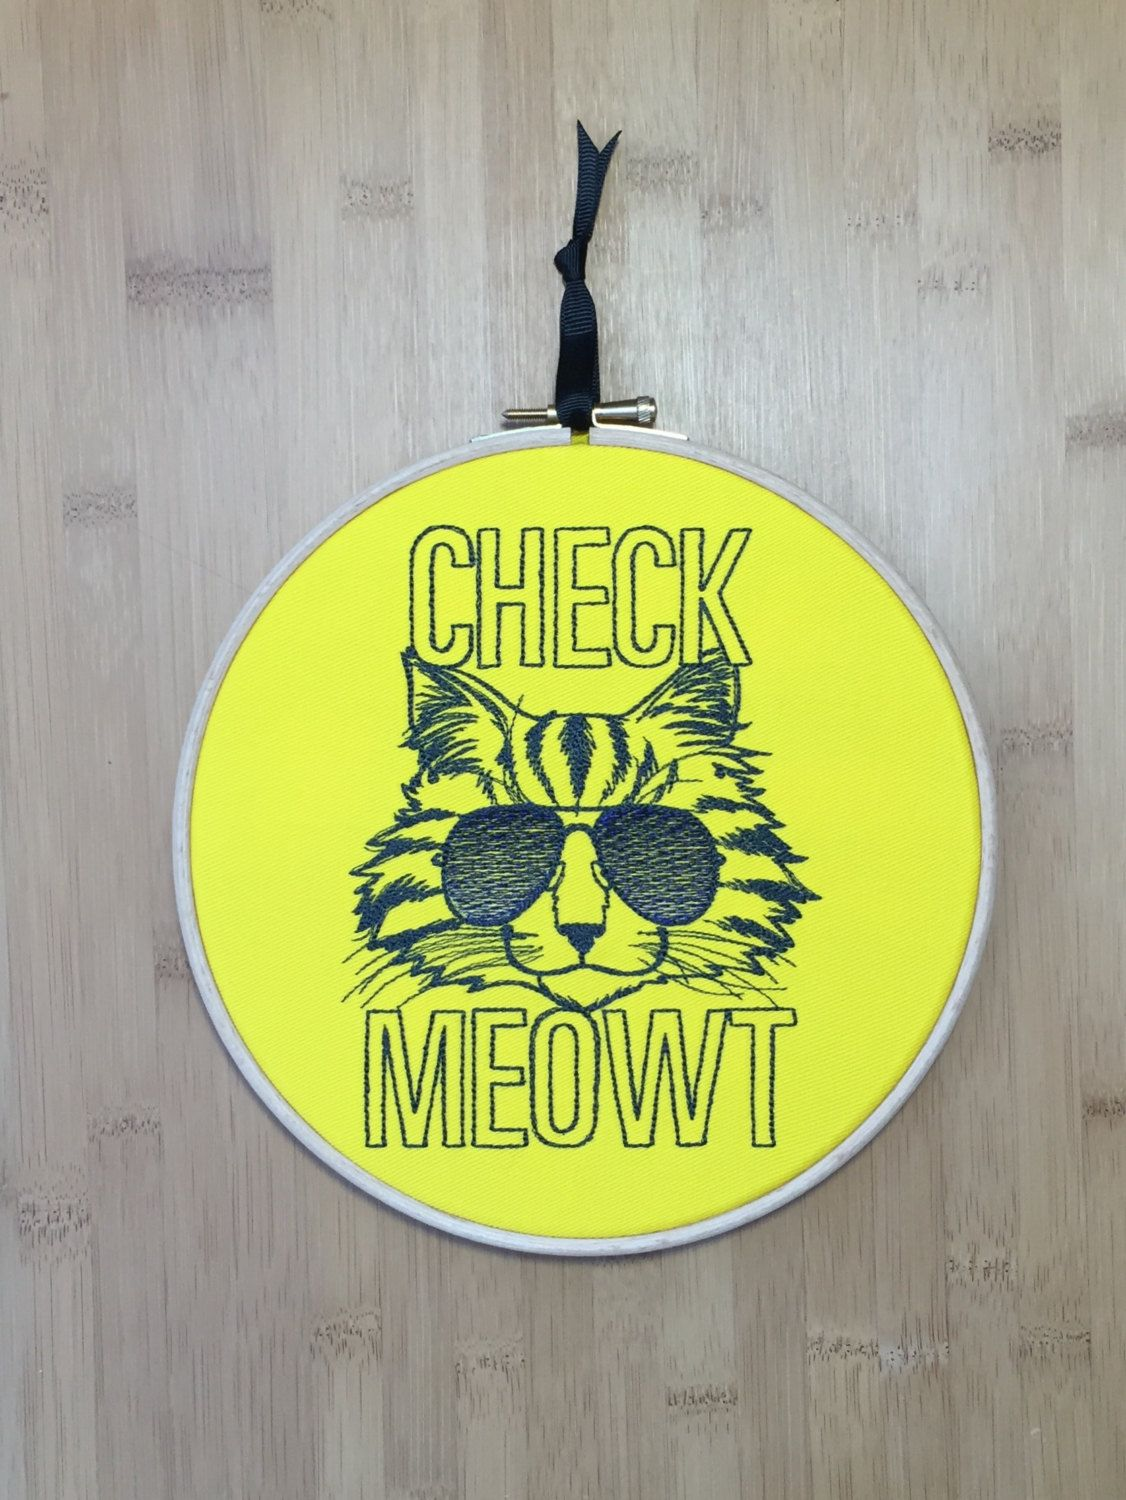 Check meowt embroidery hoop art embroidered cat in sunglasses wall ...